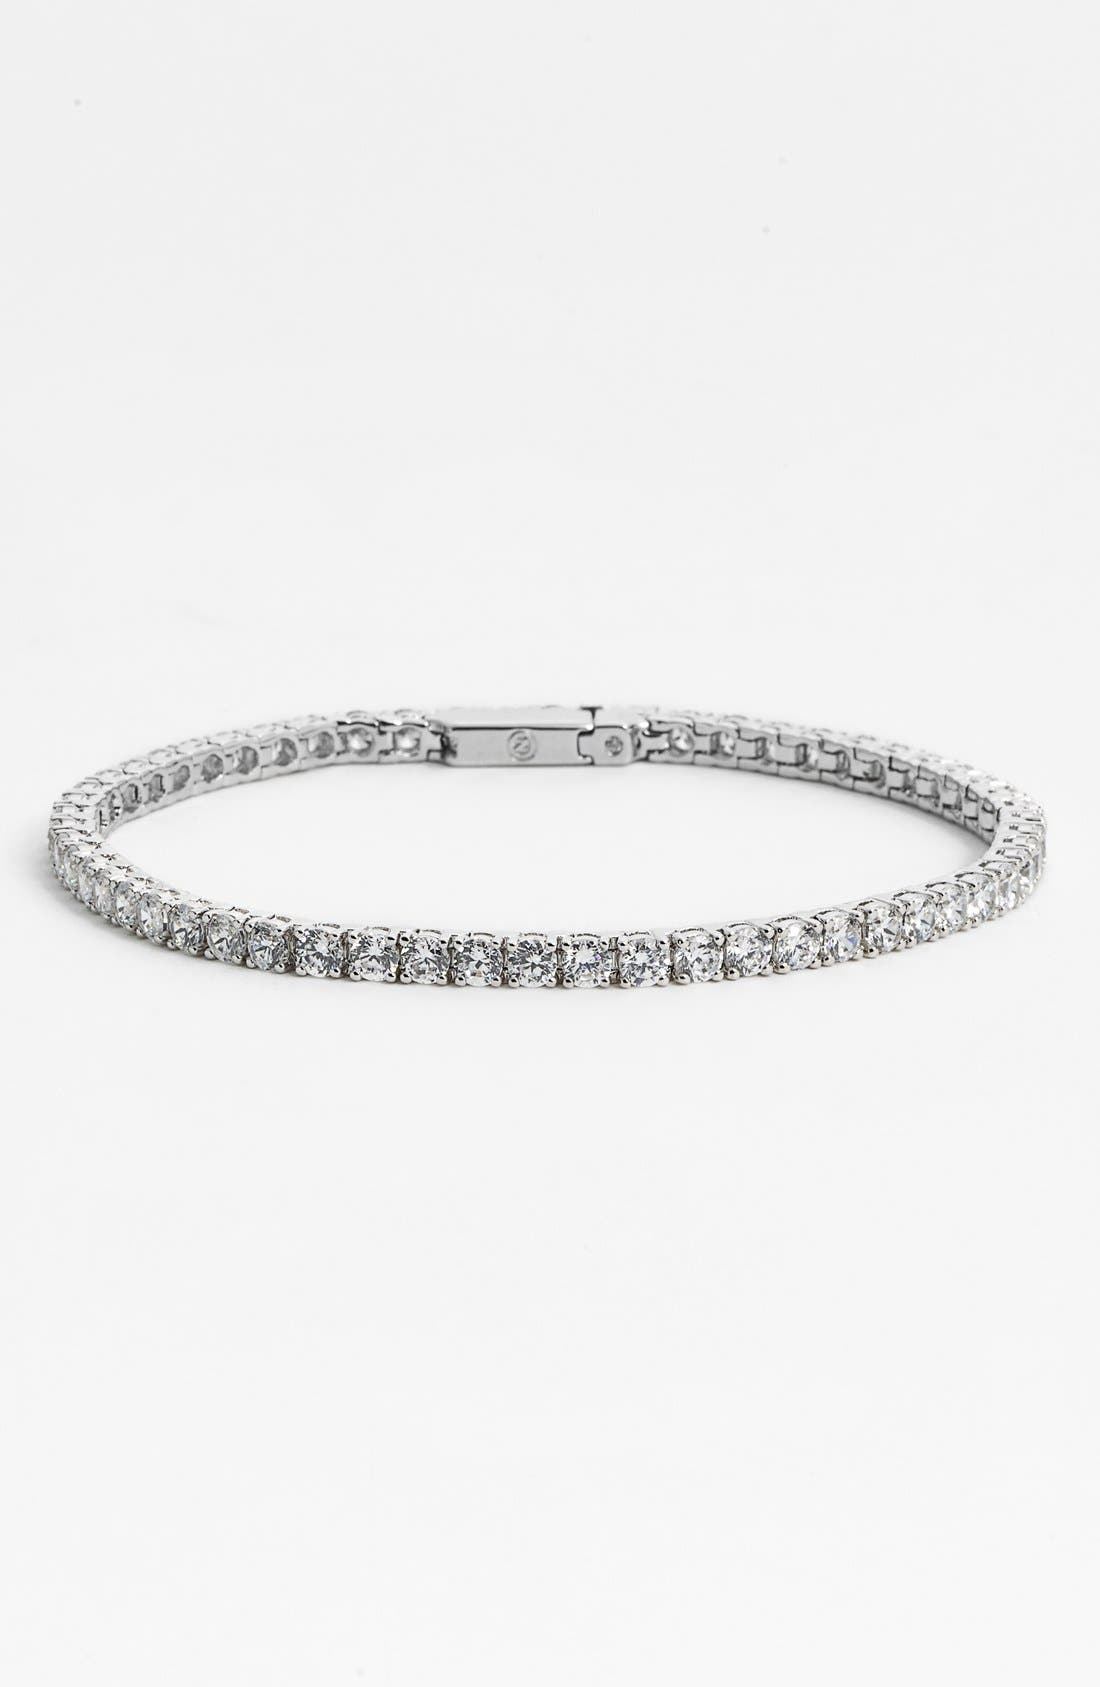 Small Tennis Bracelet,                         Main,                         color, Silver